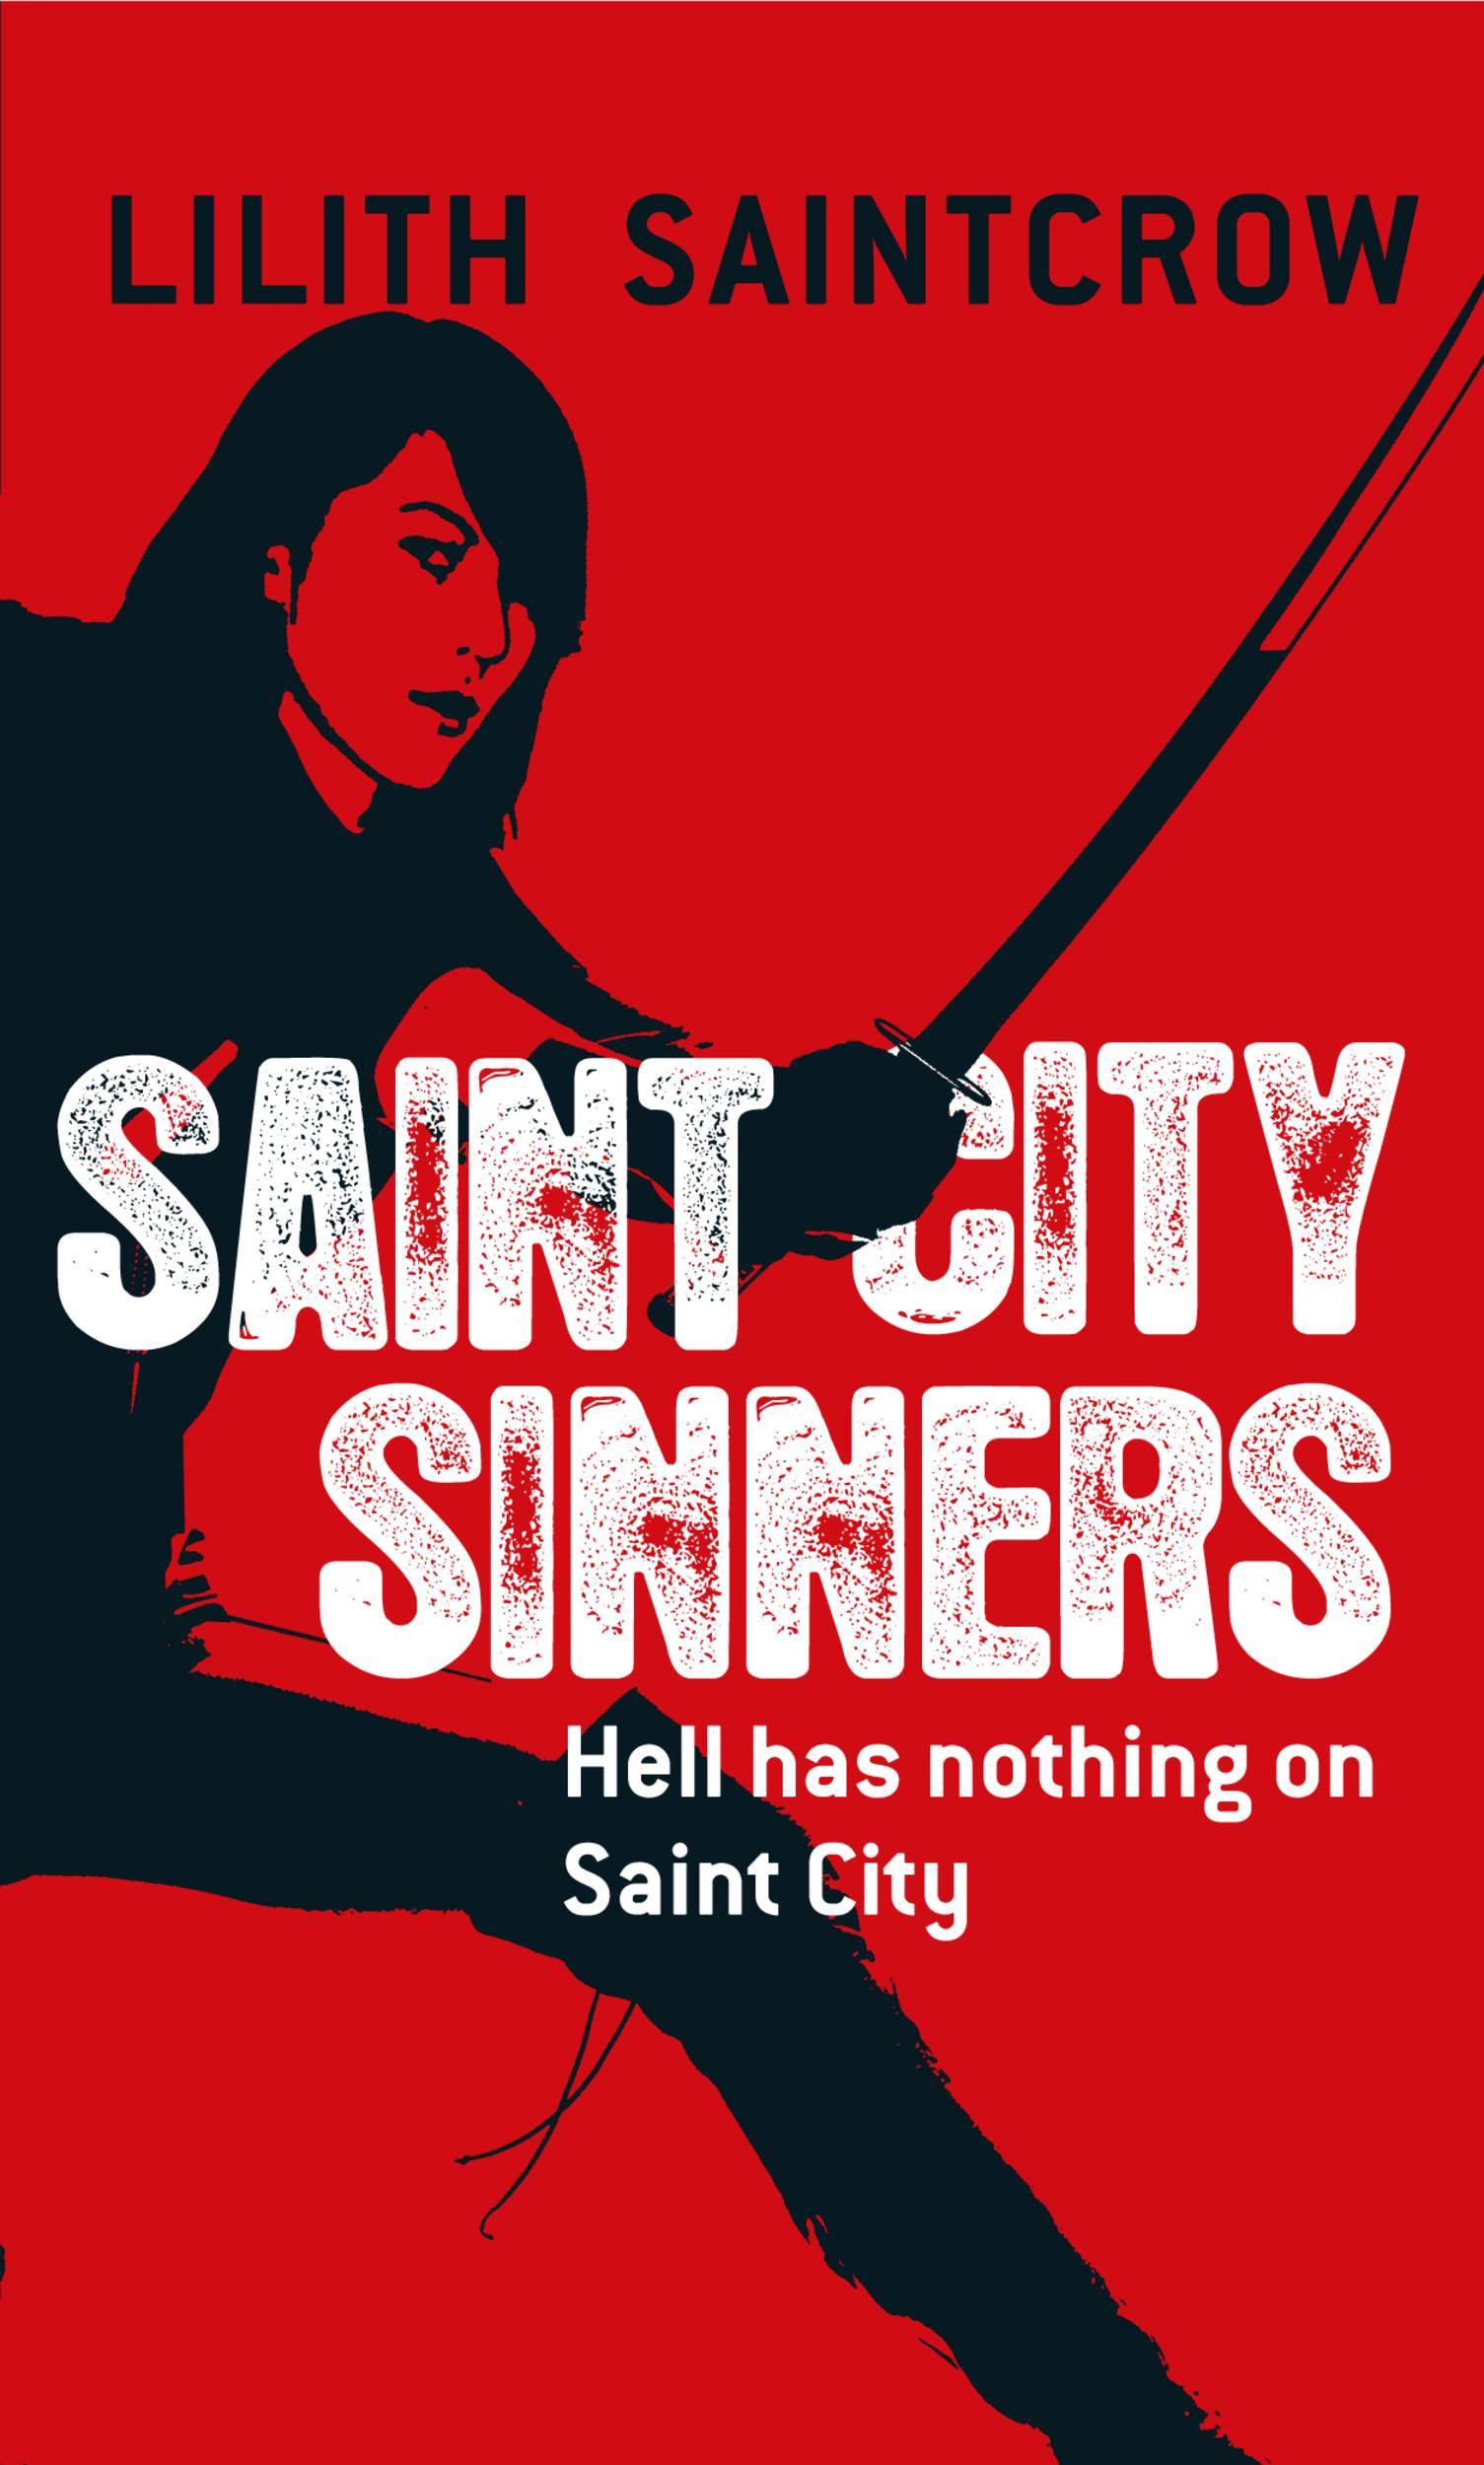 Saint City Sinners By: Lilith Saintcrow